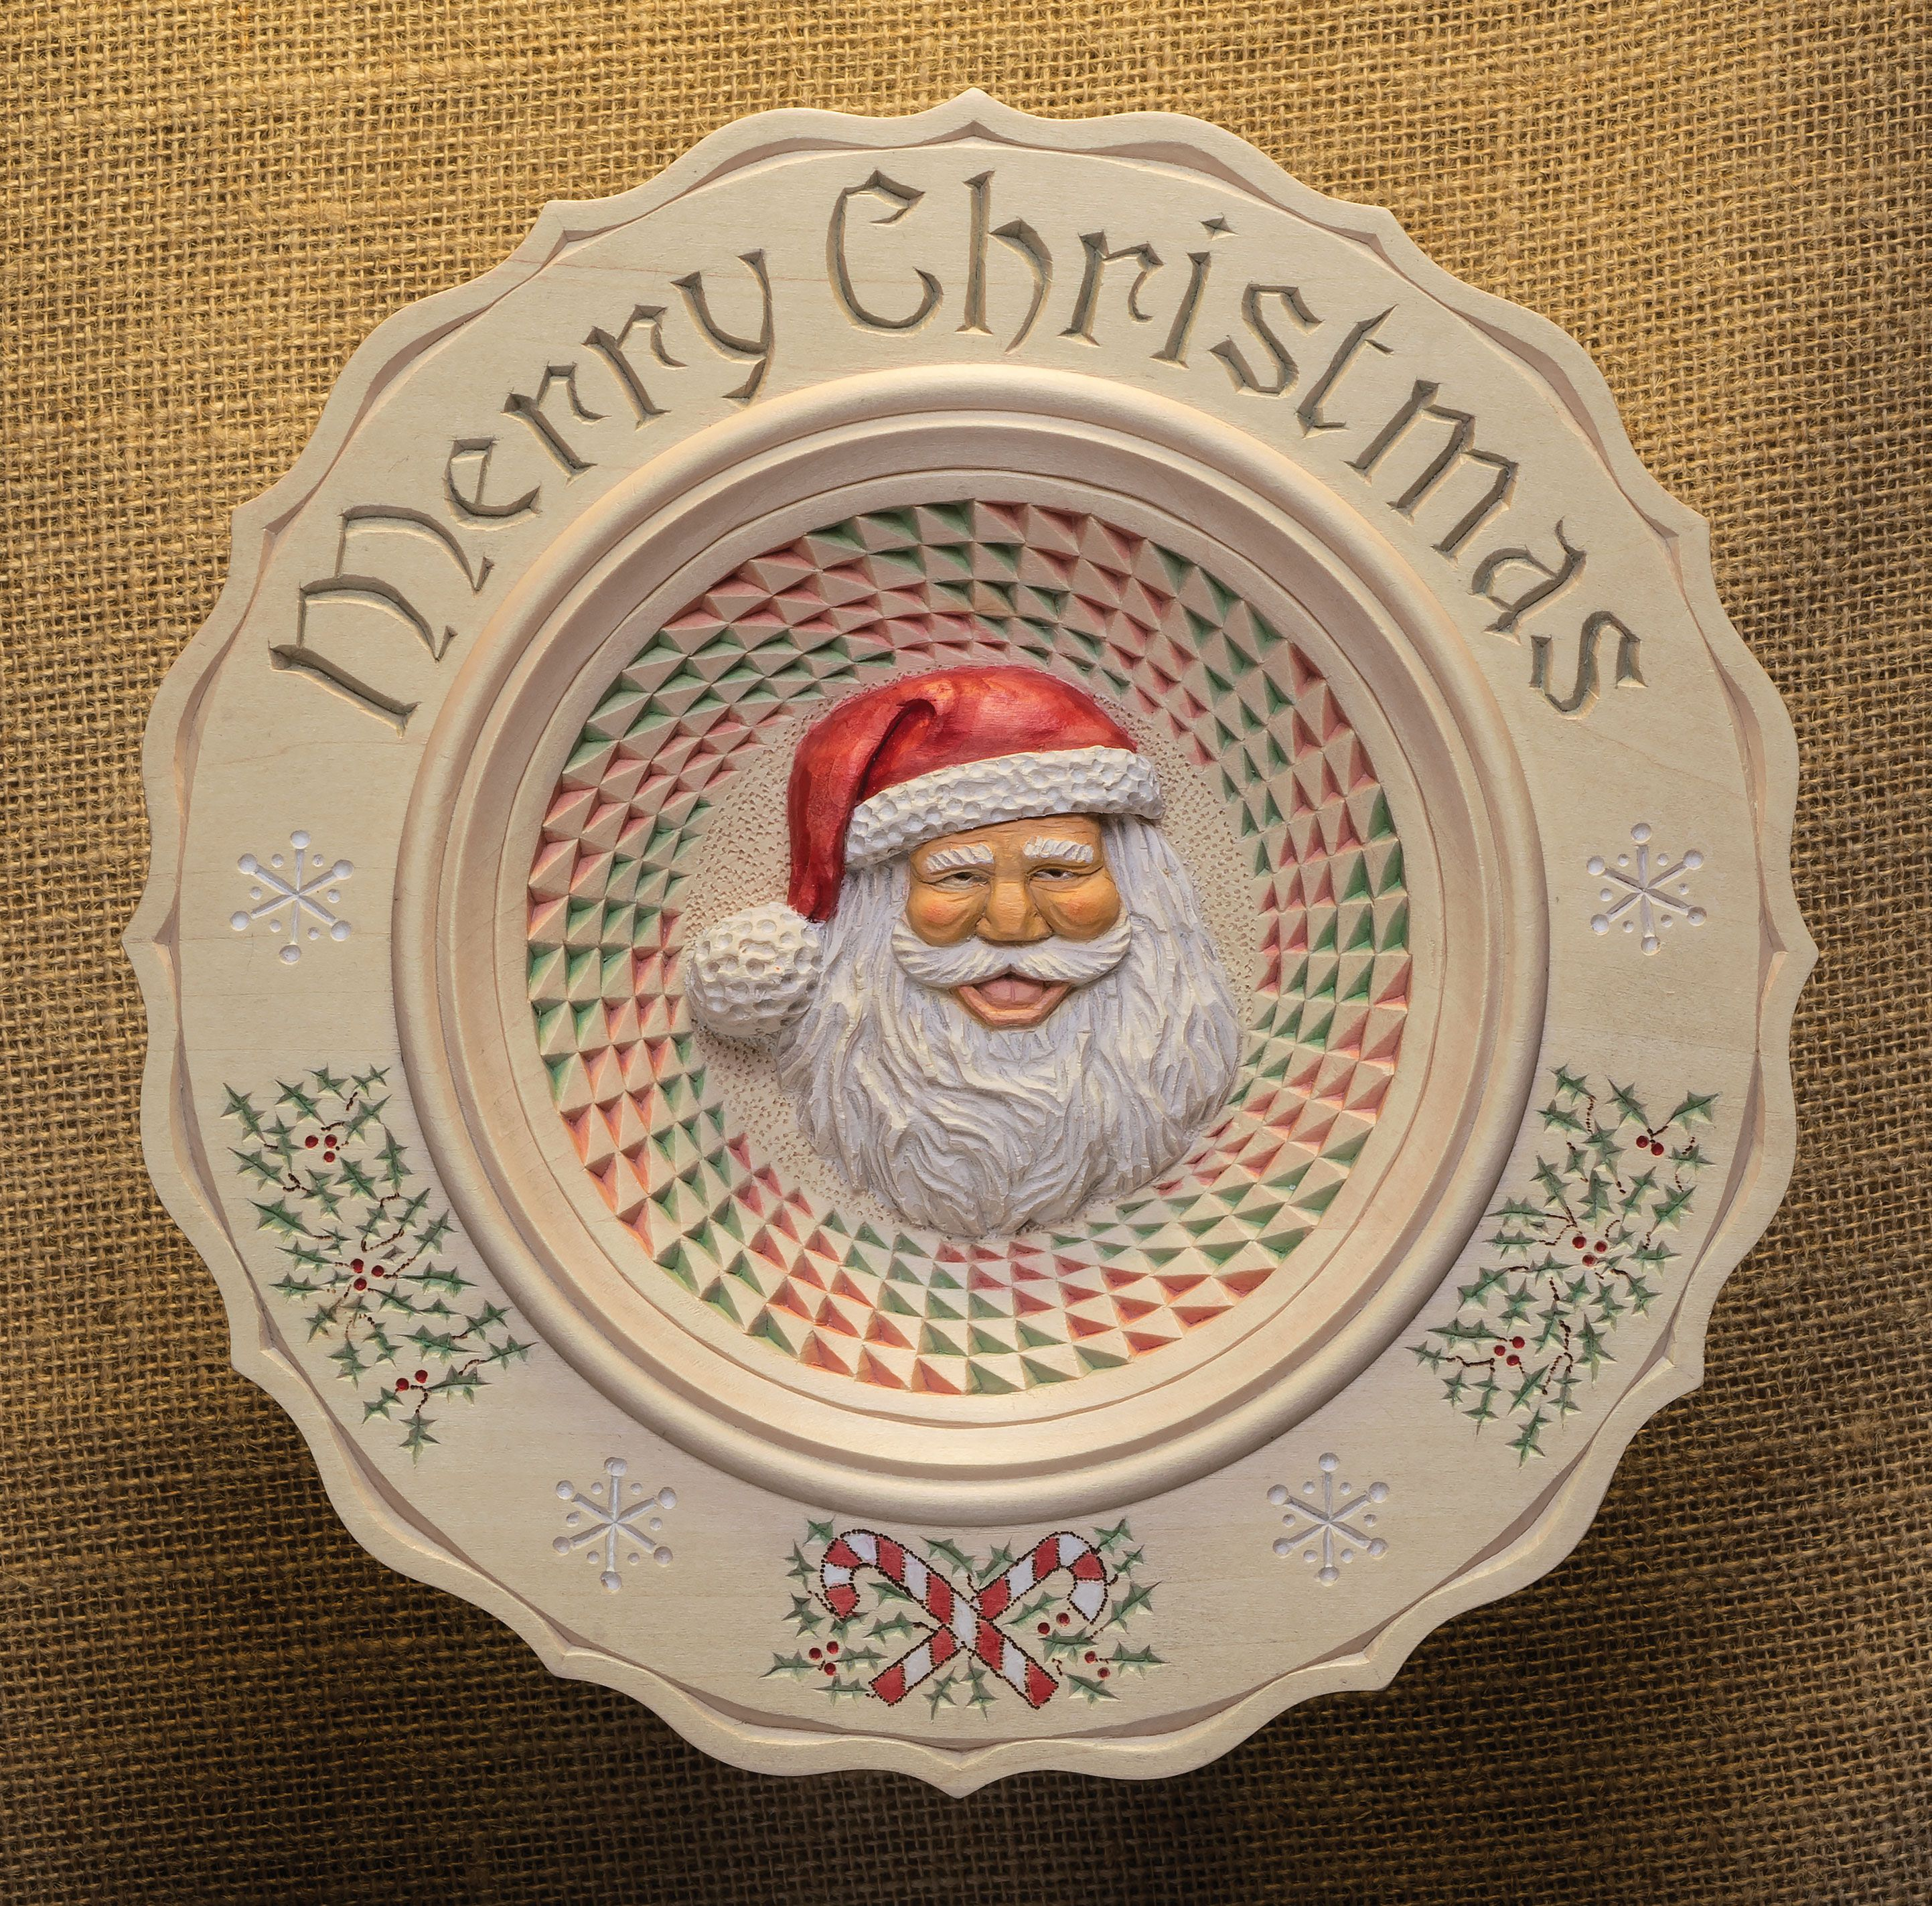 Chip carving and relief combine to create a unique holiday